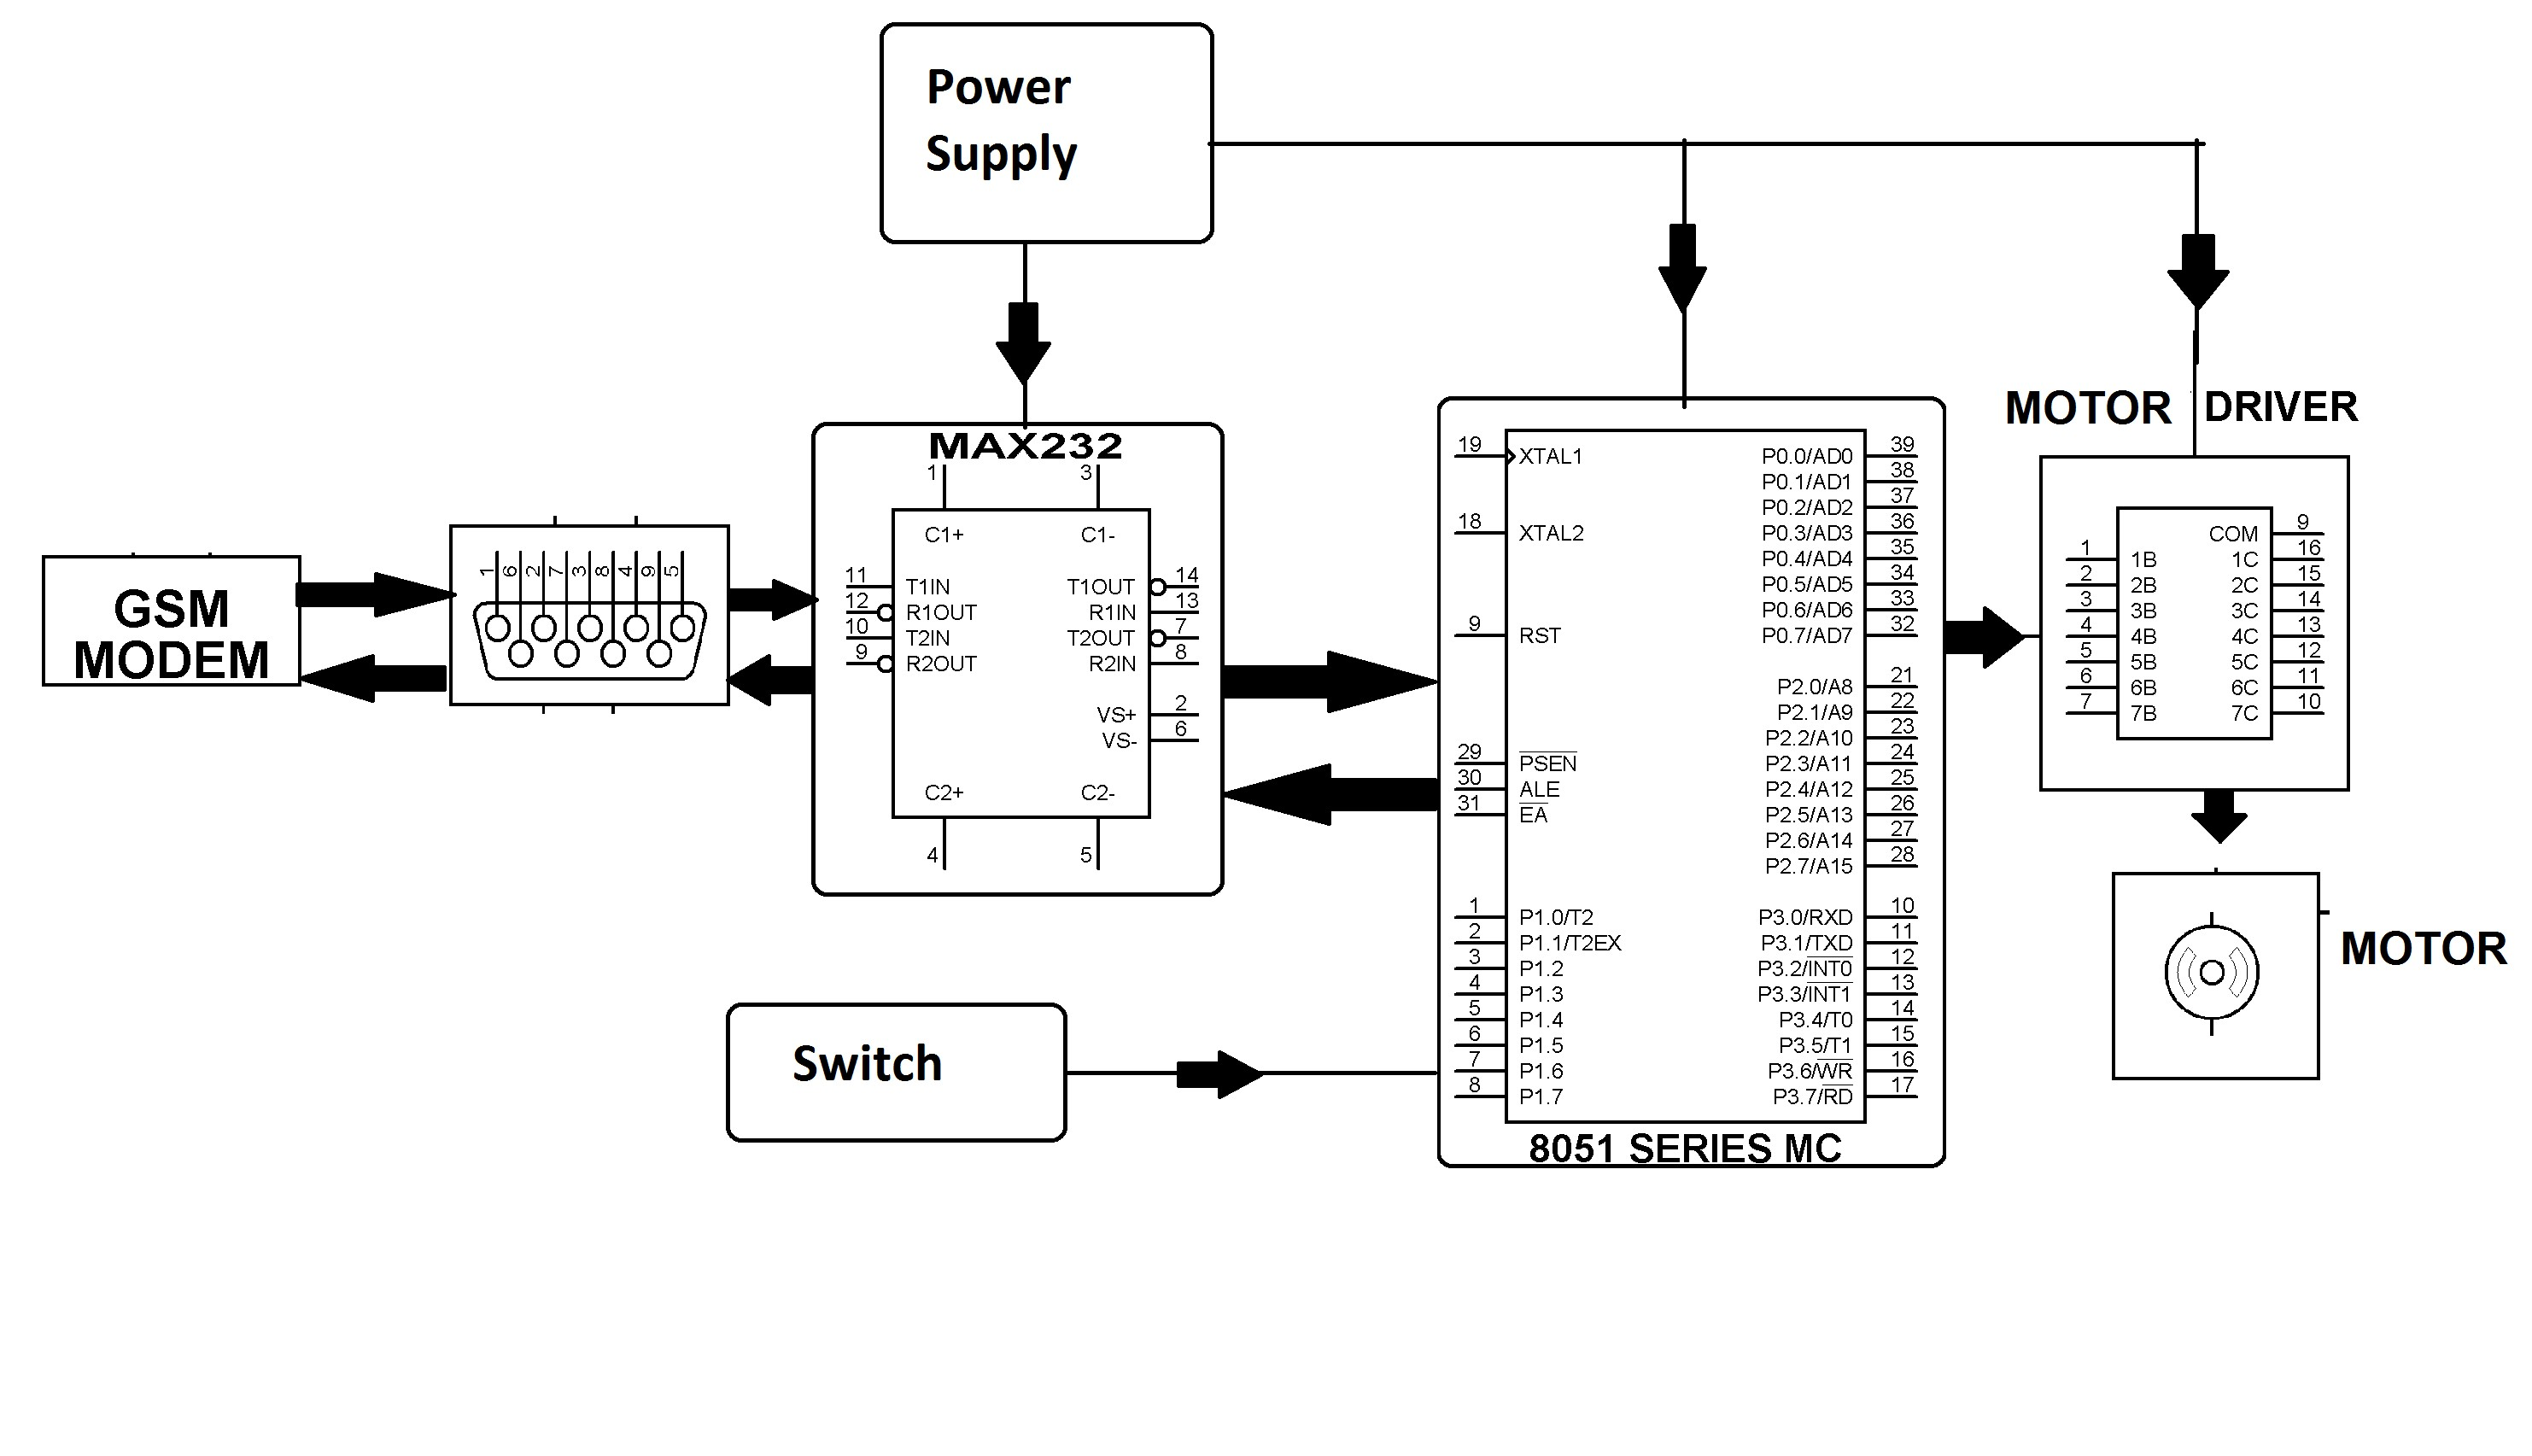 Car Infotainment System Block Diagram Freescale Mcus Simplify Car ...